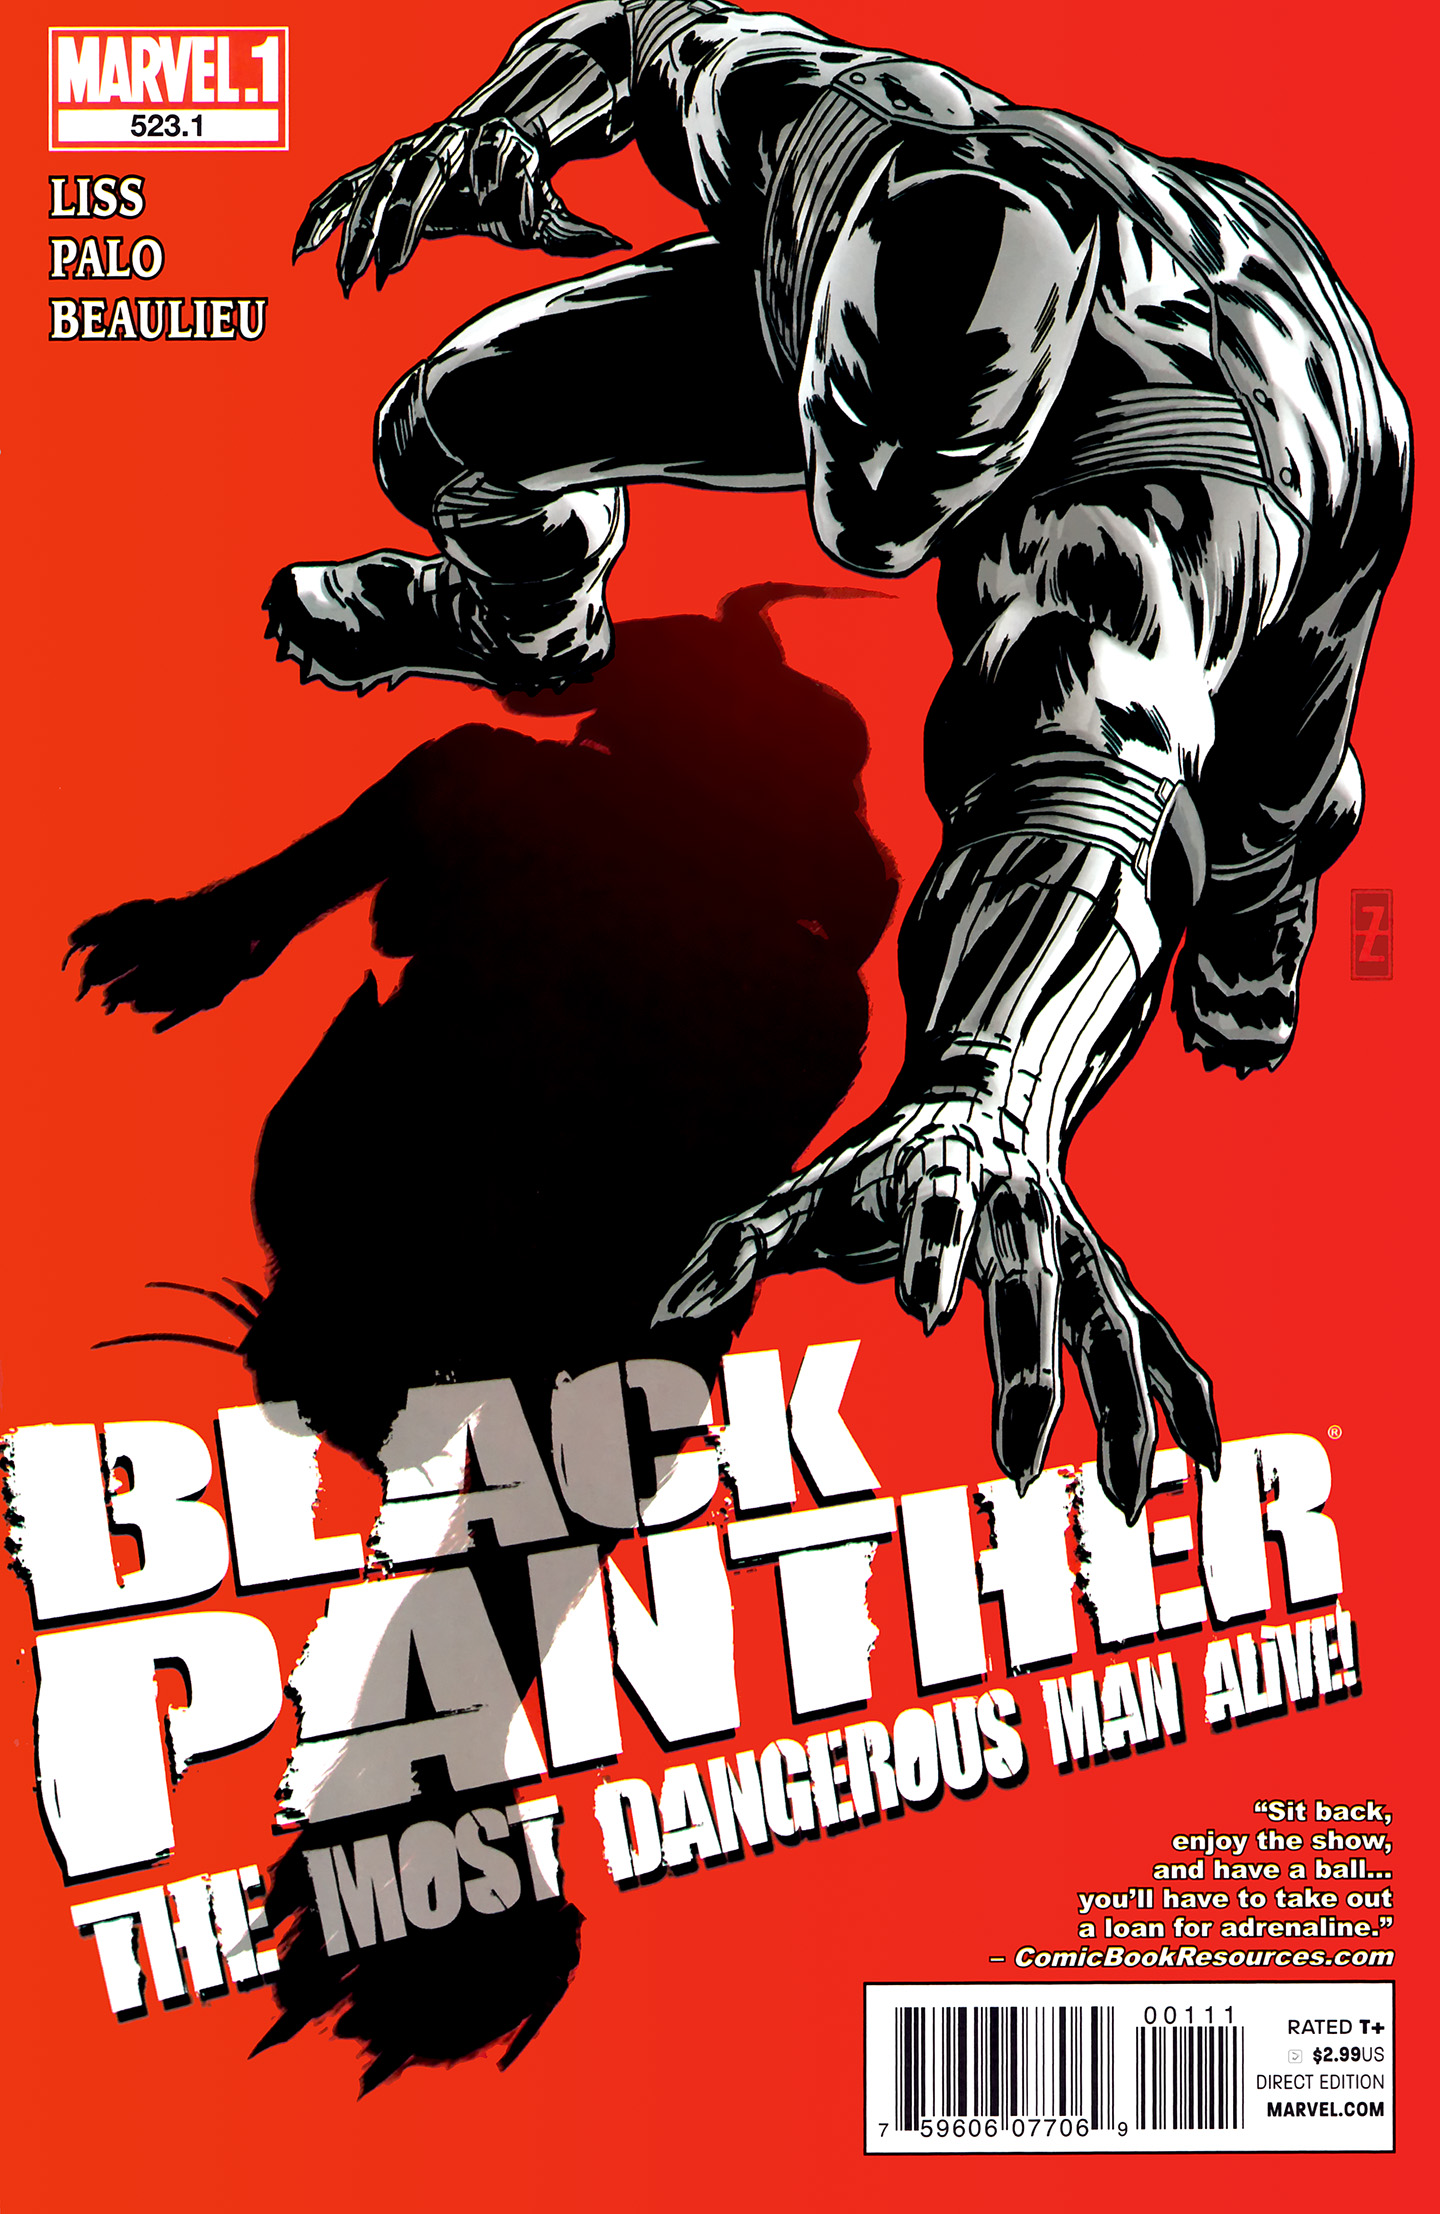 Black Panther: The Most Dangerous Man Alive! Vol 1 523.1